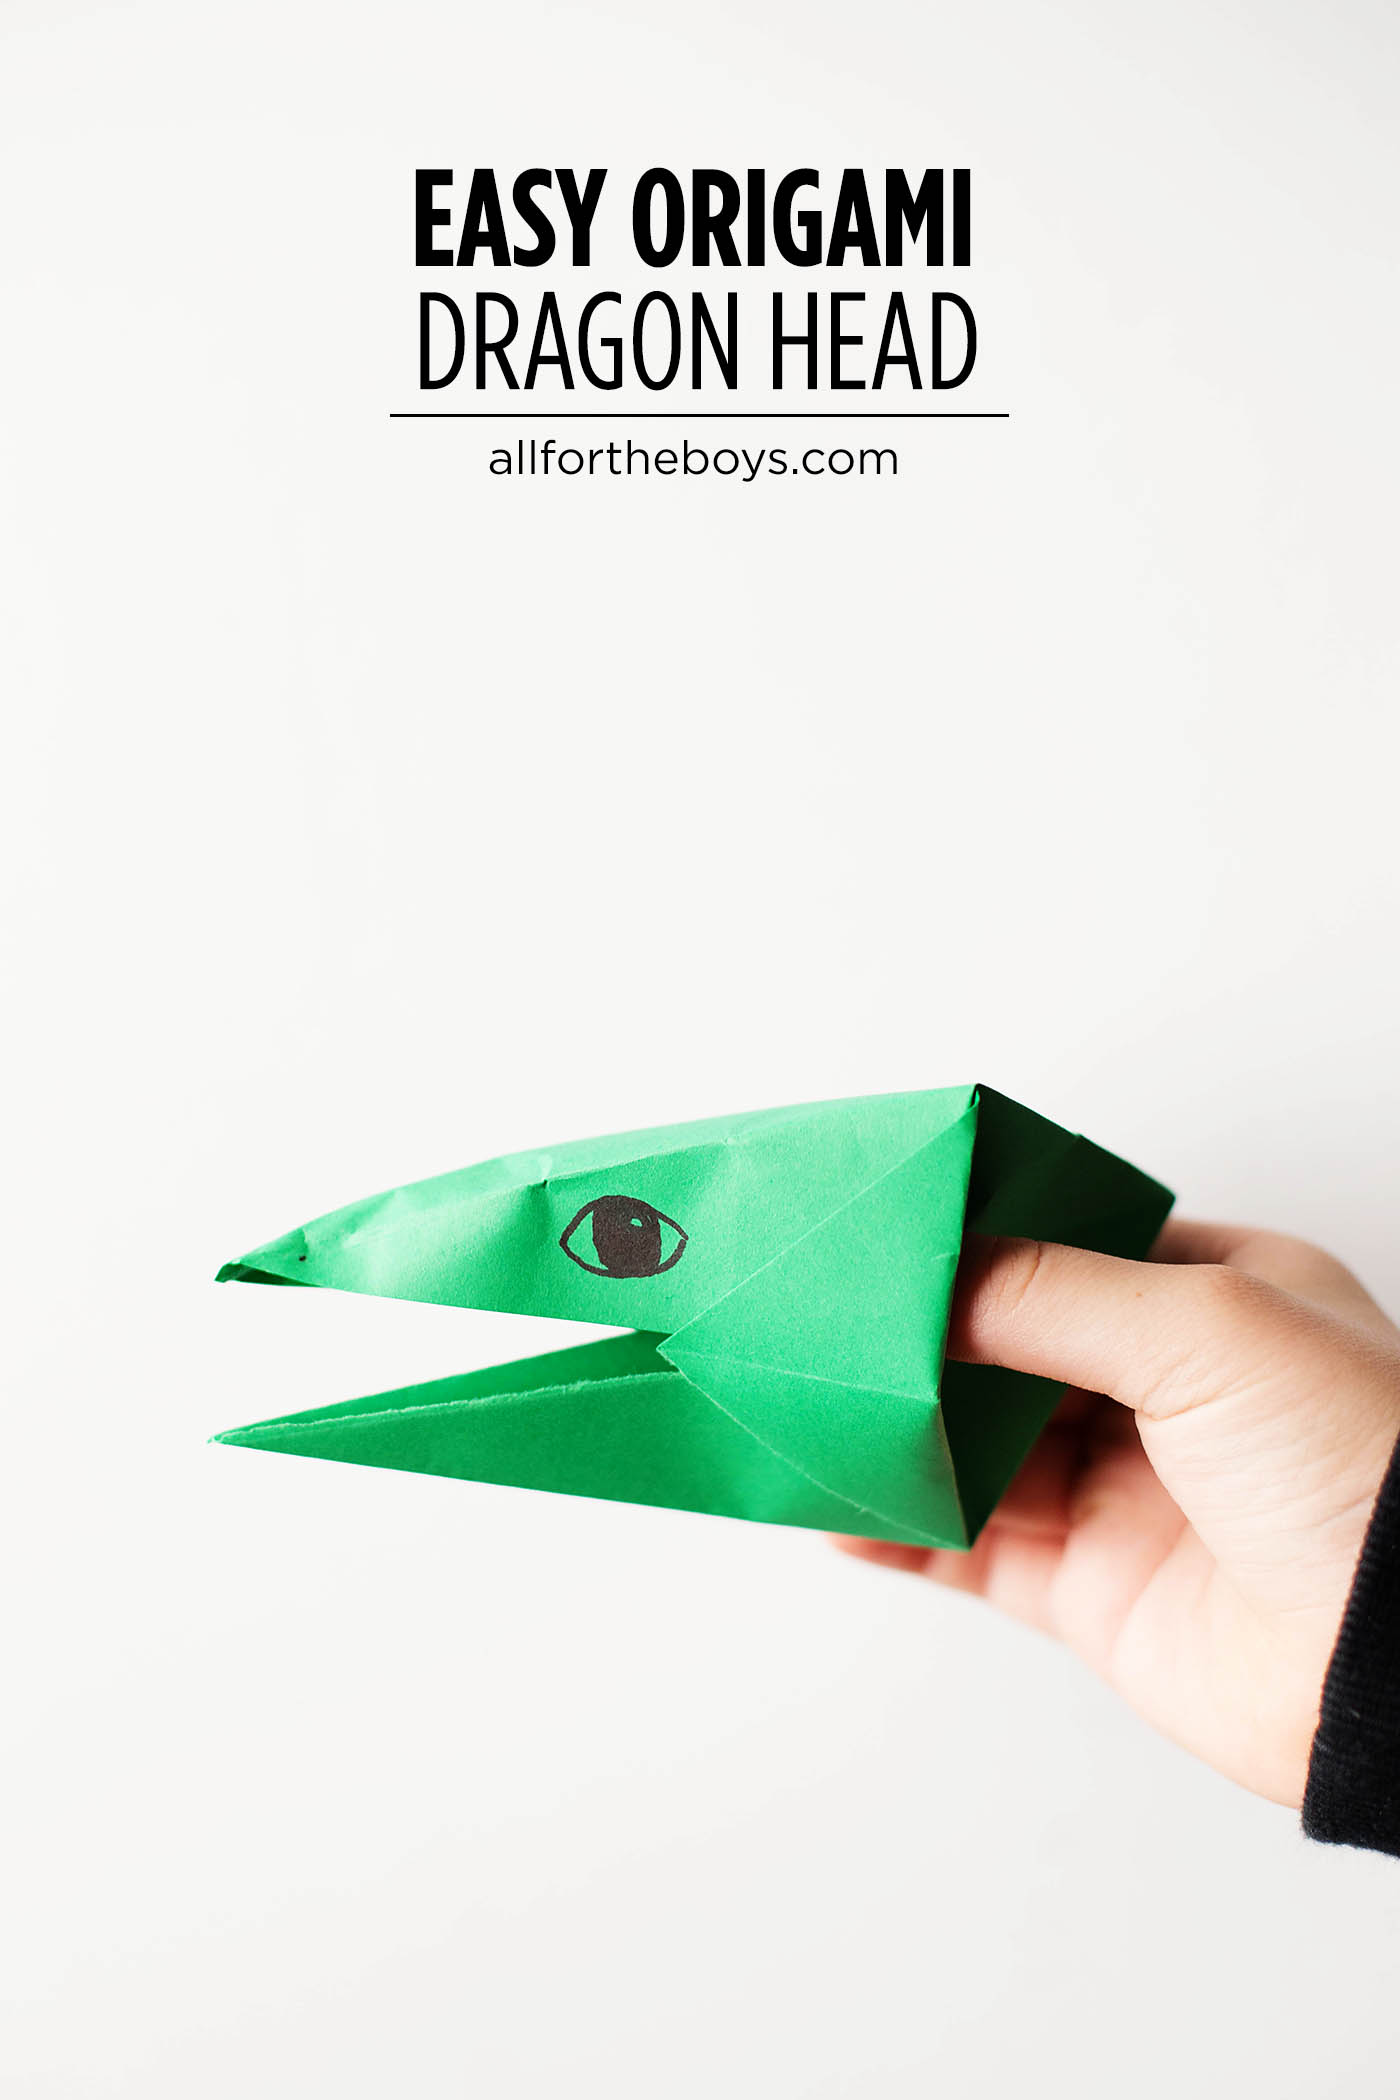 Easy Origami Dragon Head Petes Dragon All For The Boys